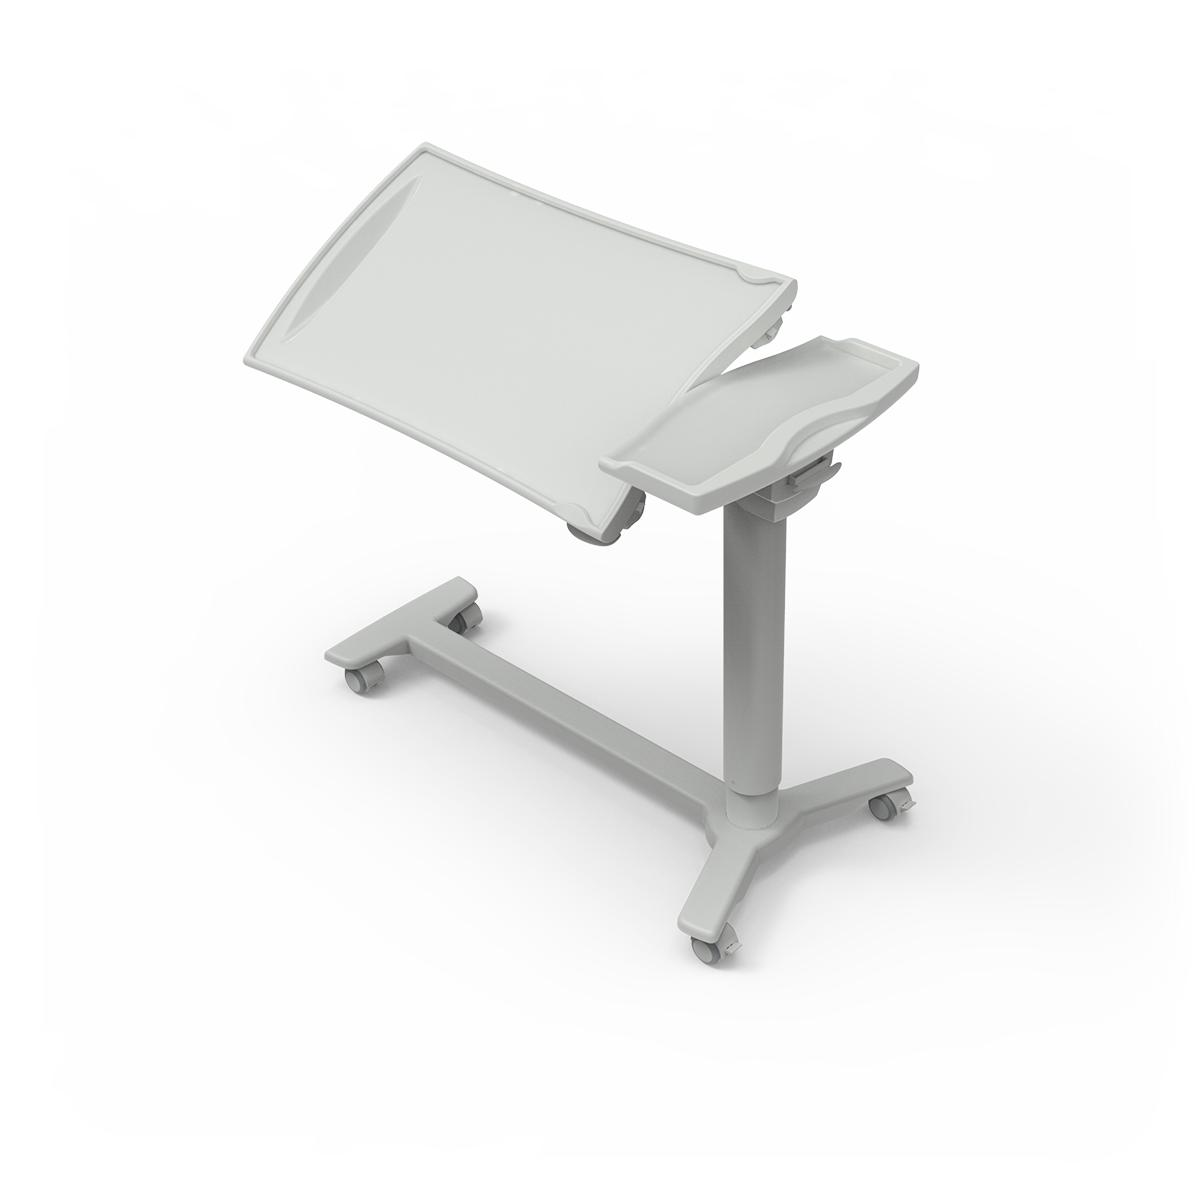 Overbed Table TA270 with h-shaped base and tilting plastic top